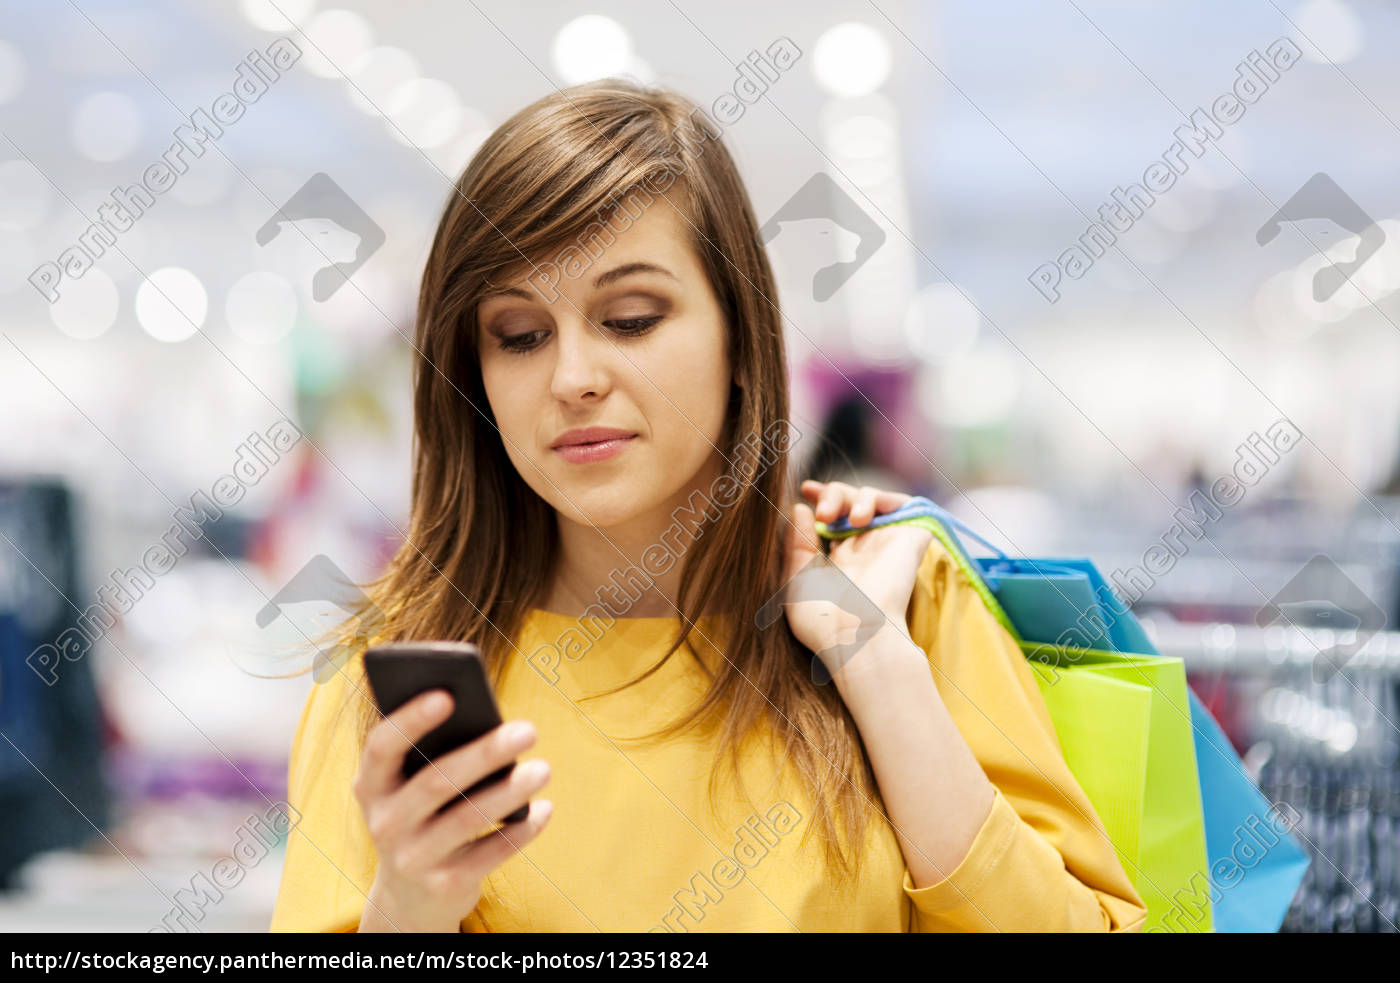 young, woman, texting, on, mobile, phone - 12351824